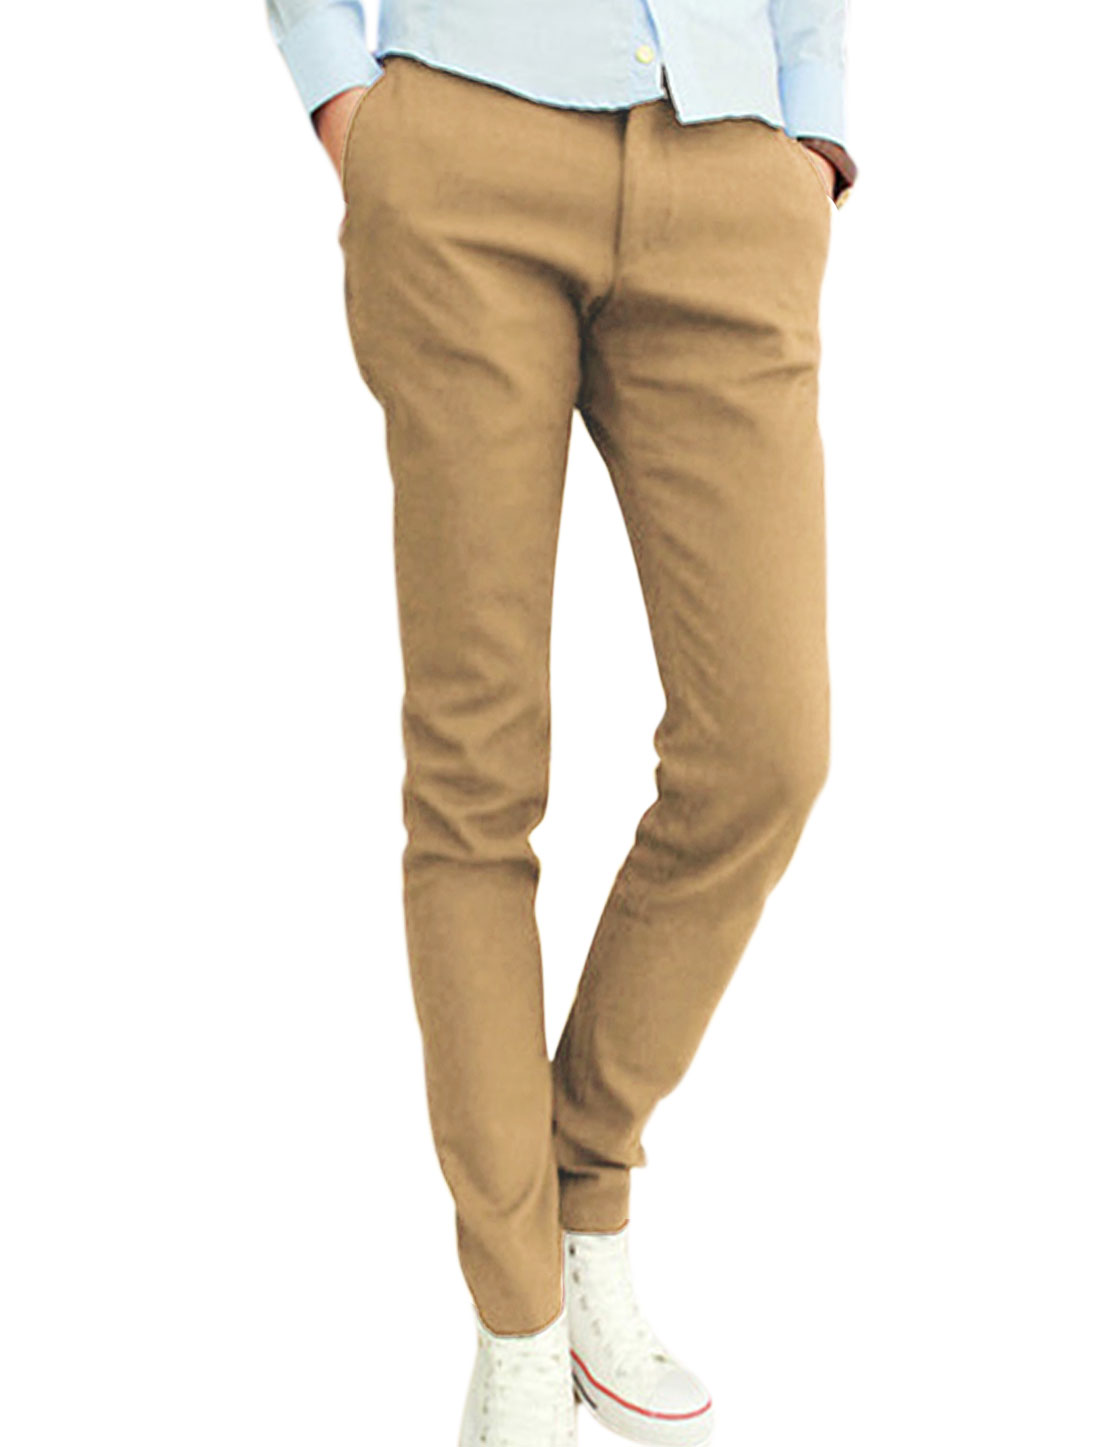 Men NEW Fashion One Button Up Pockets Front Leisure Pants Khaki W30